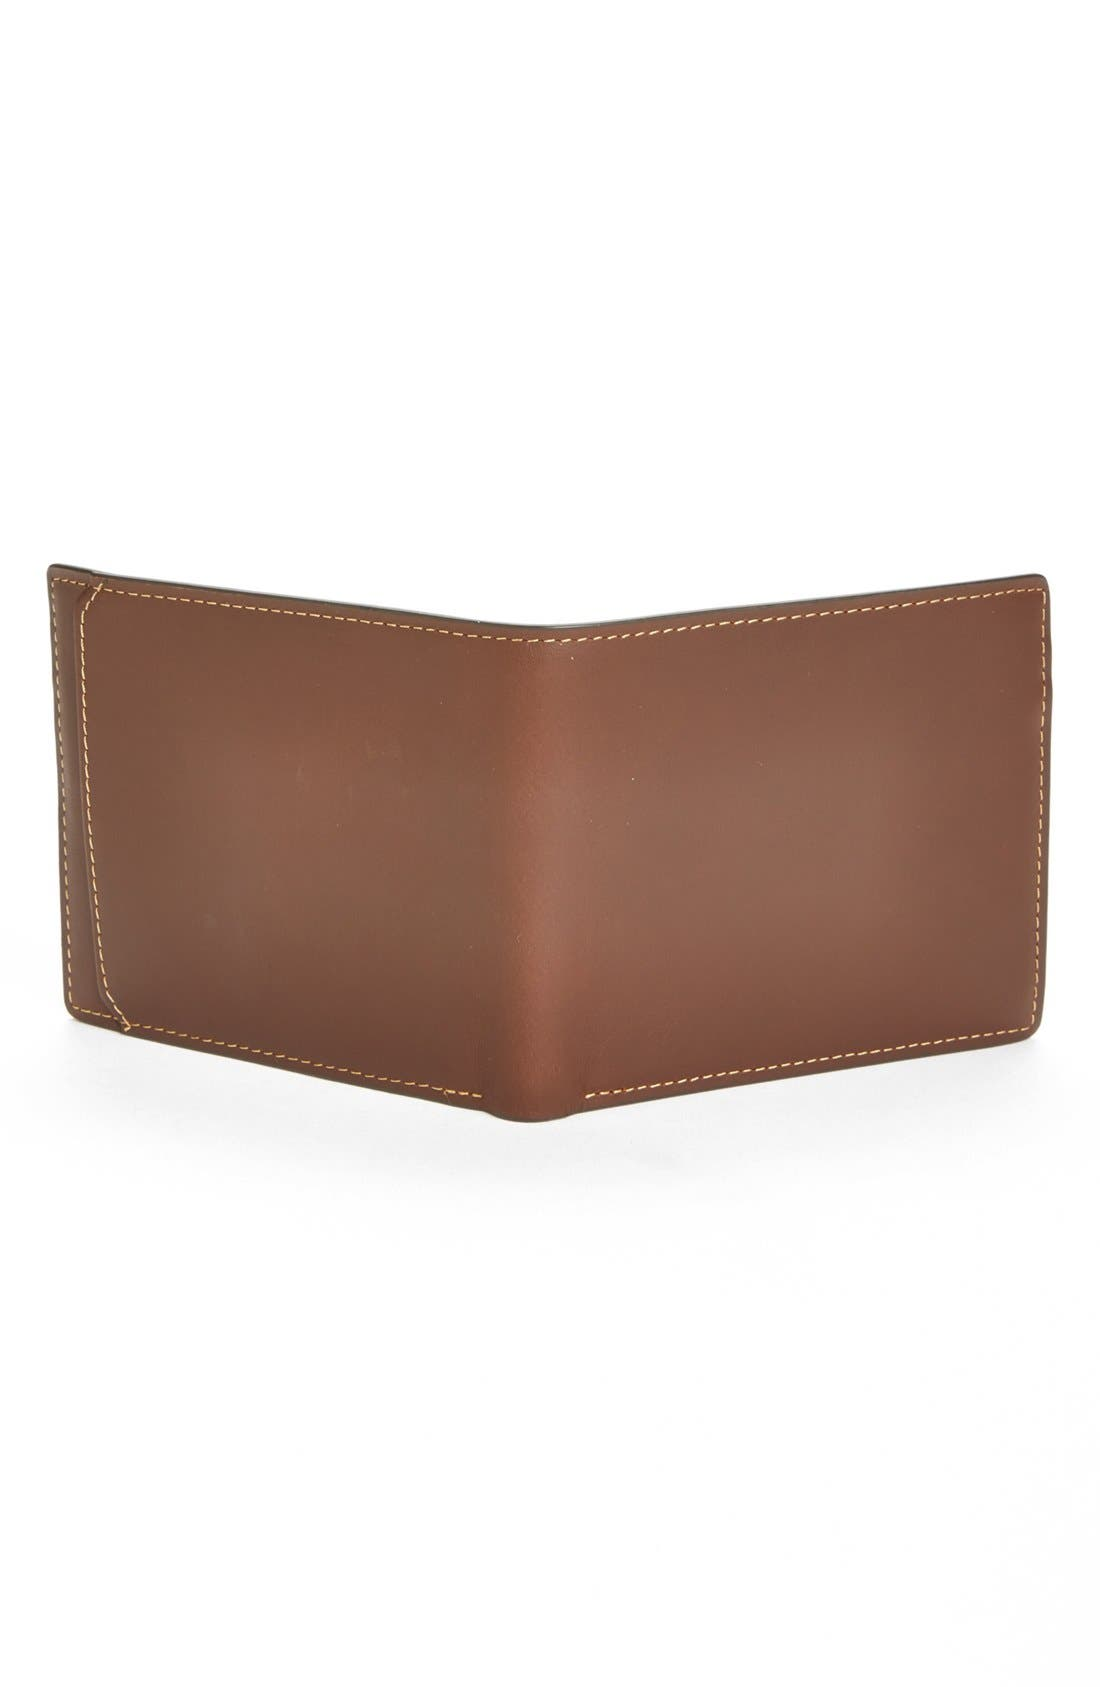 'Bryant' RFID Blocker Slimfold Wallet,                             Alternate thumbnail 2, color,